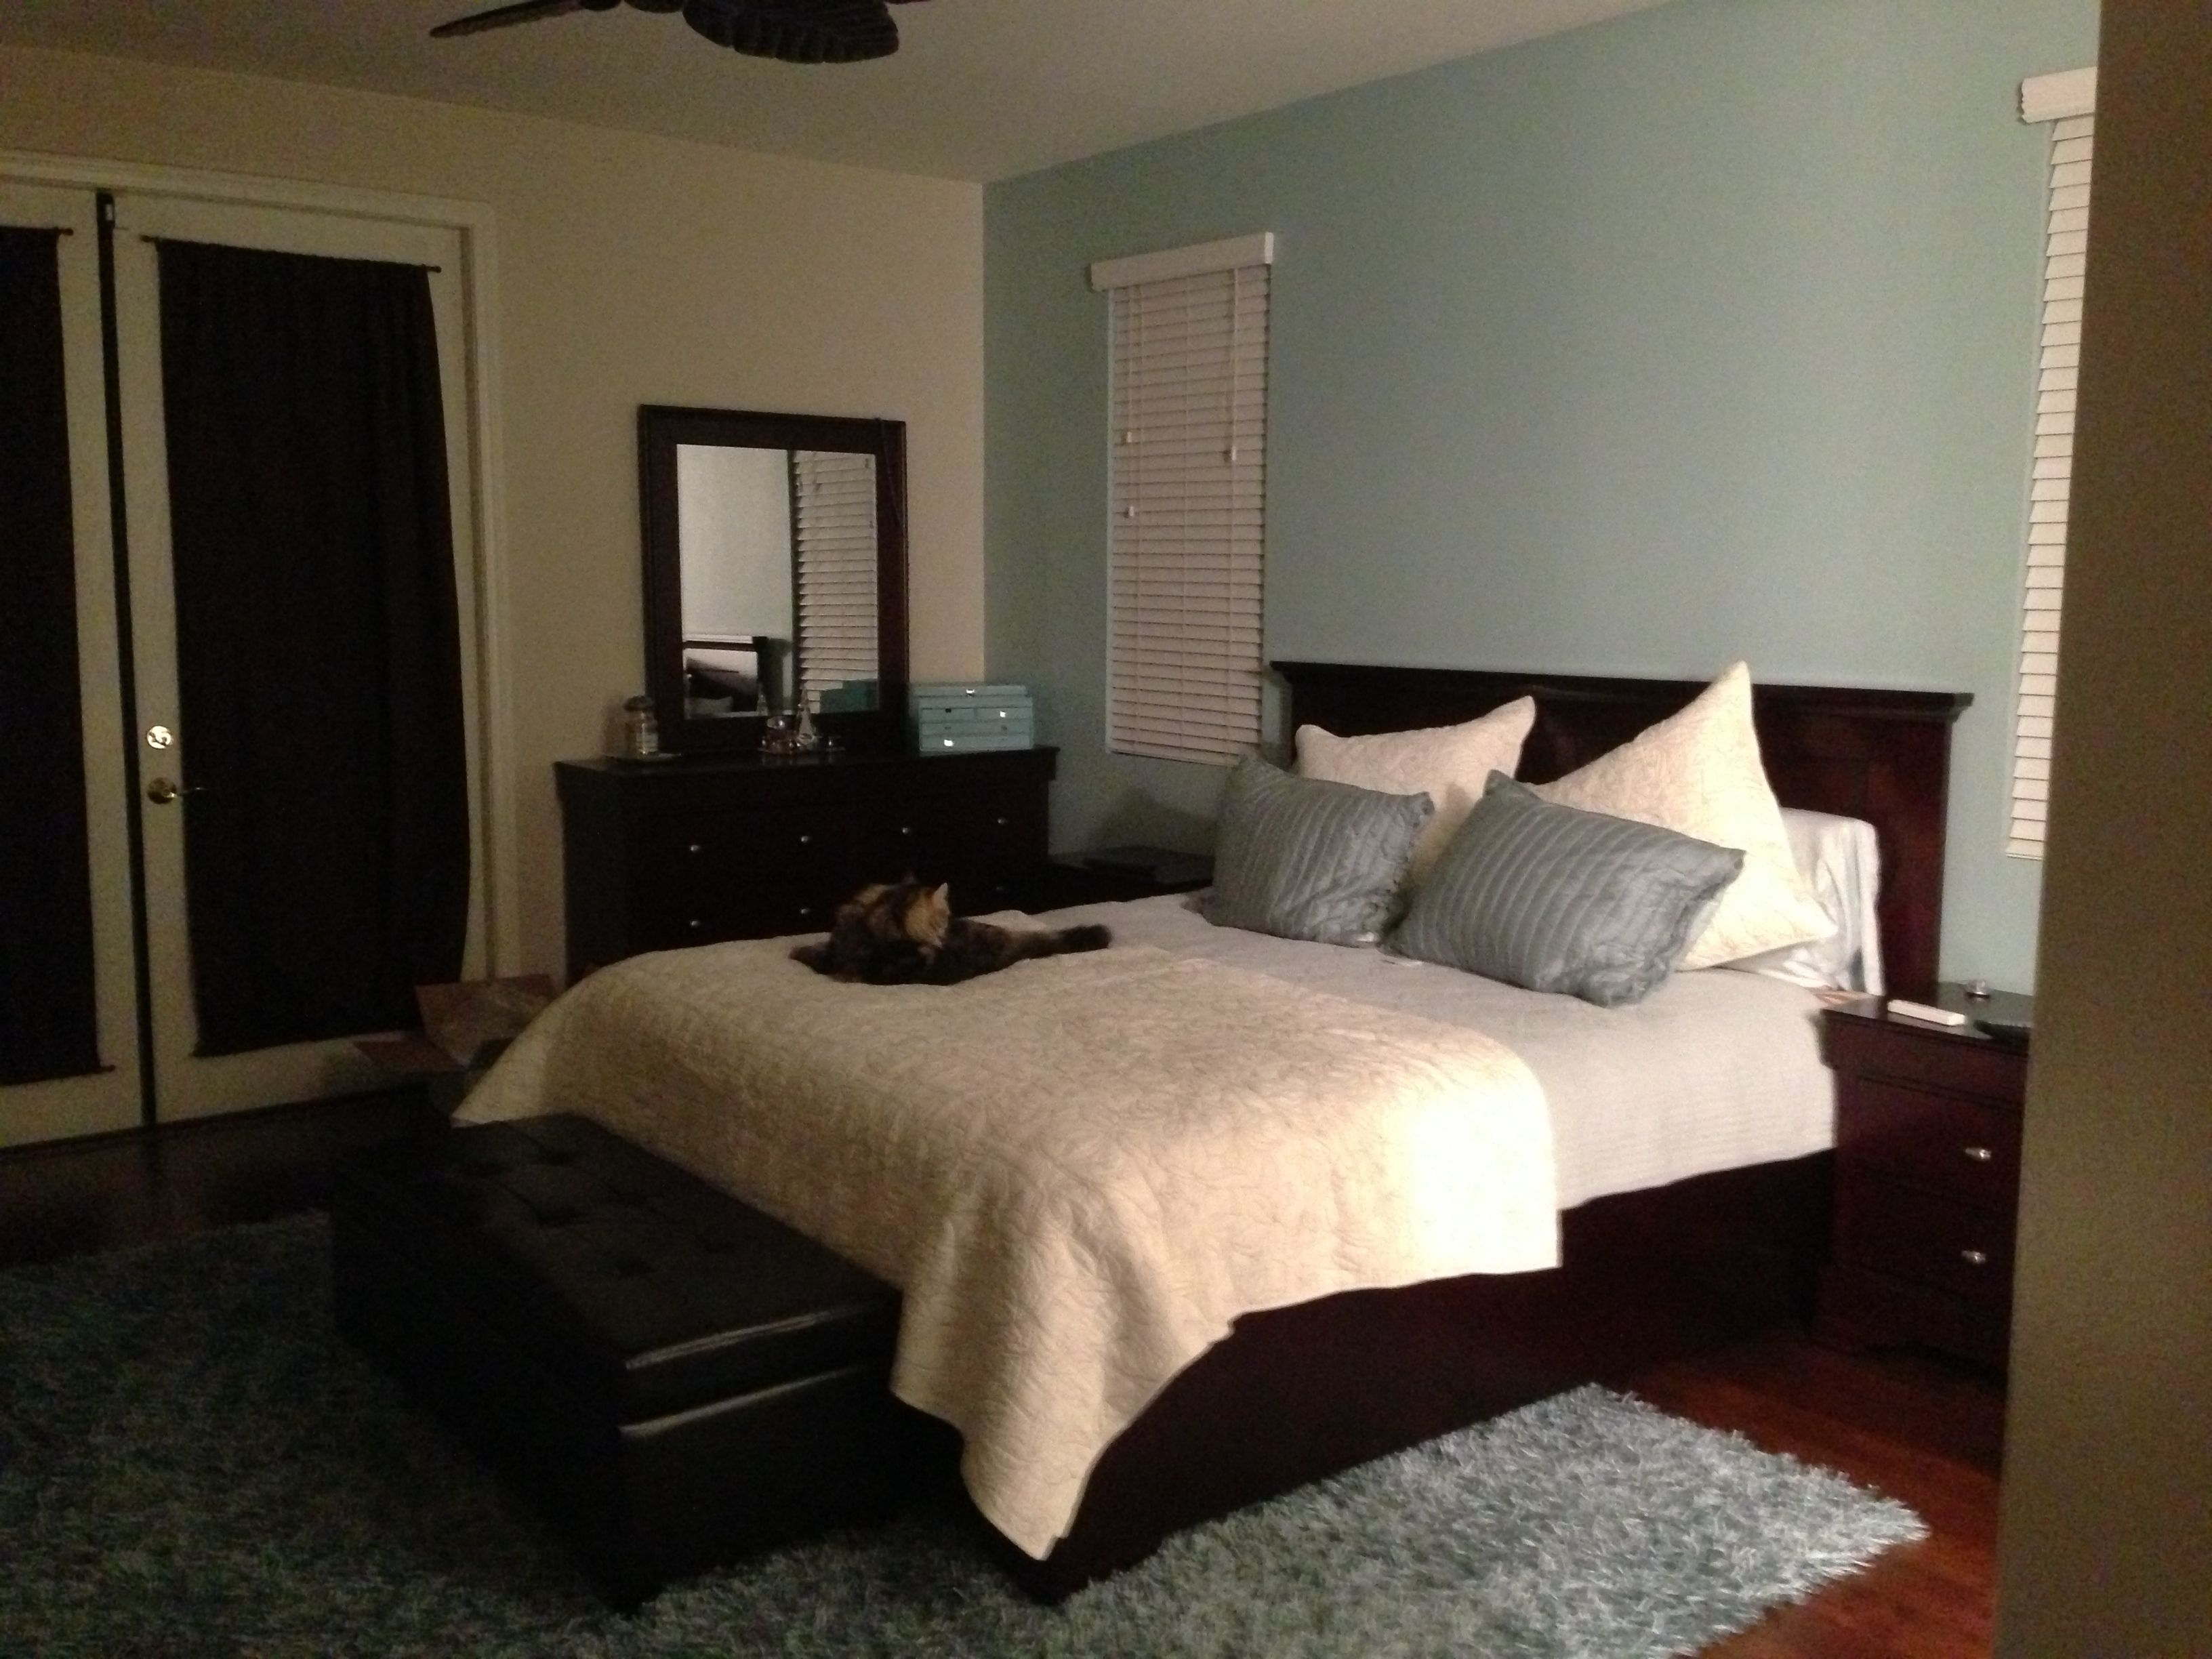 Night Shot Of Master Bedroom Benjamin Moore Gossamer Blue And Behr High Style Beige Dark Espresso Furniture With Porcelain Sand Color Theme